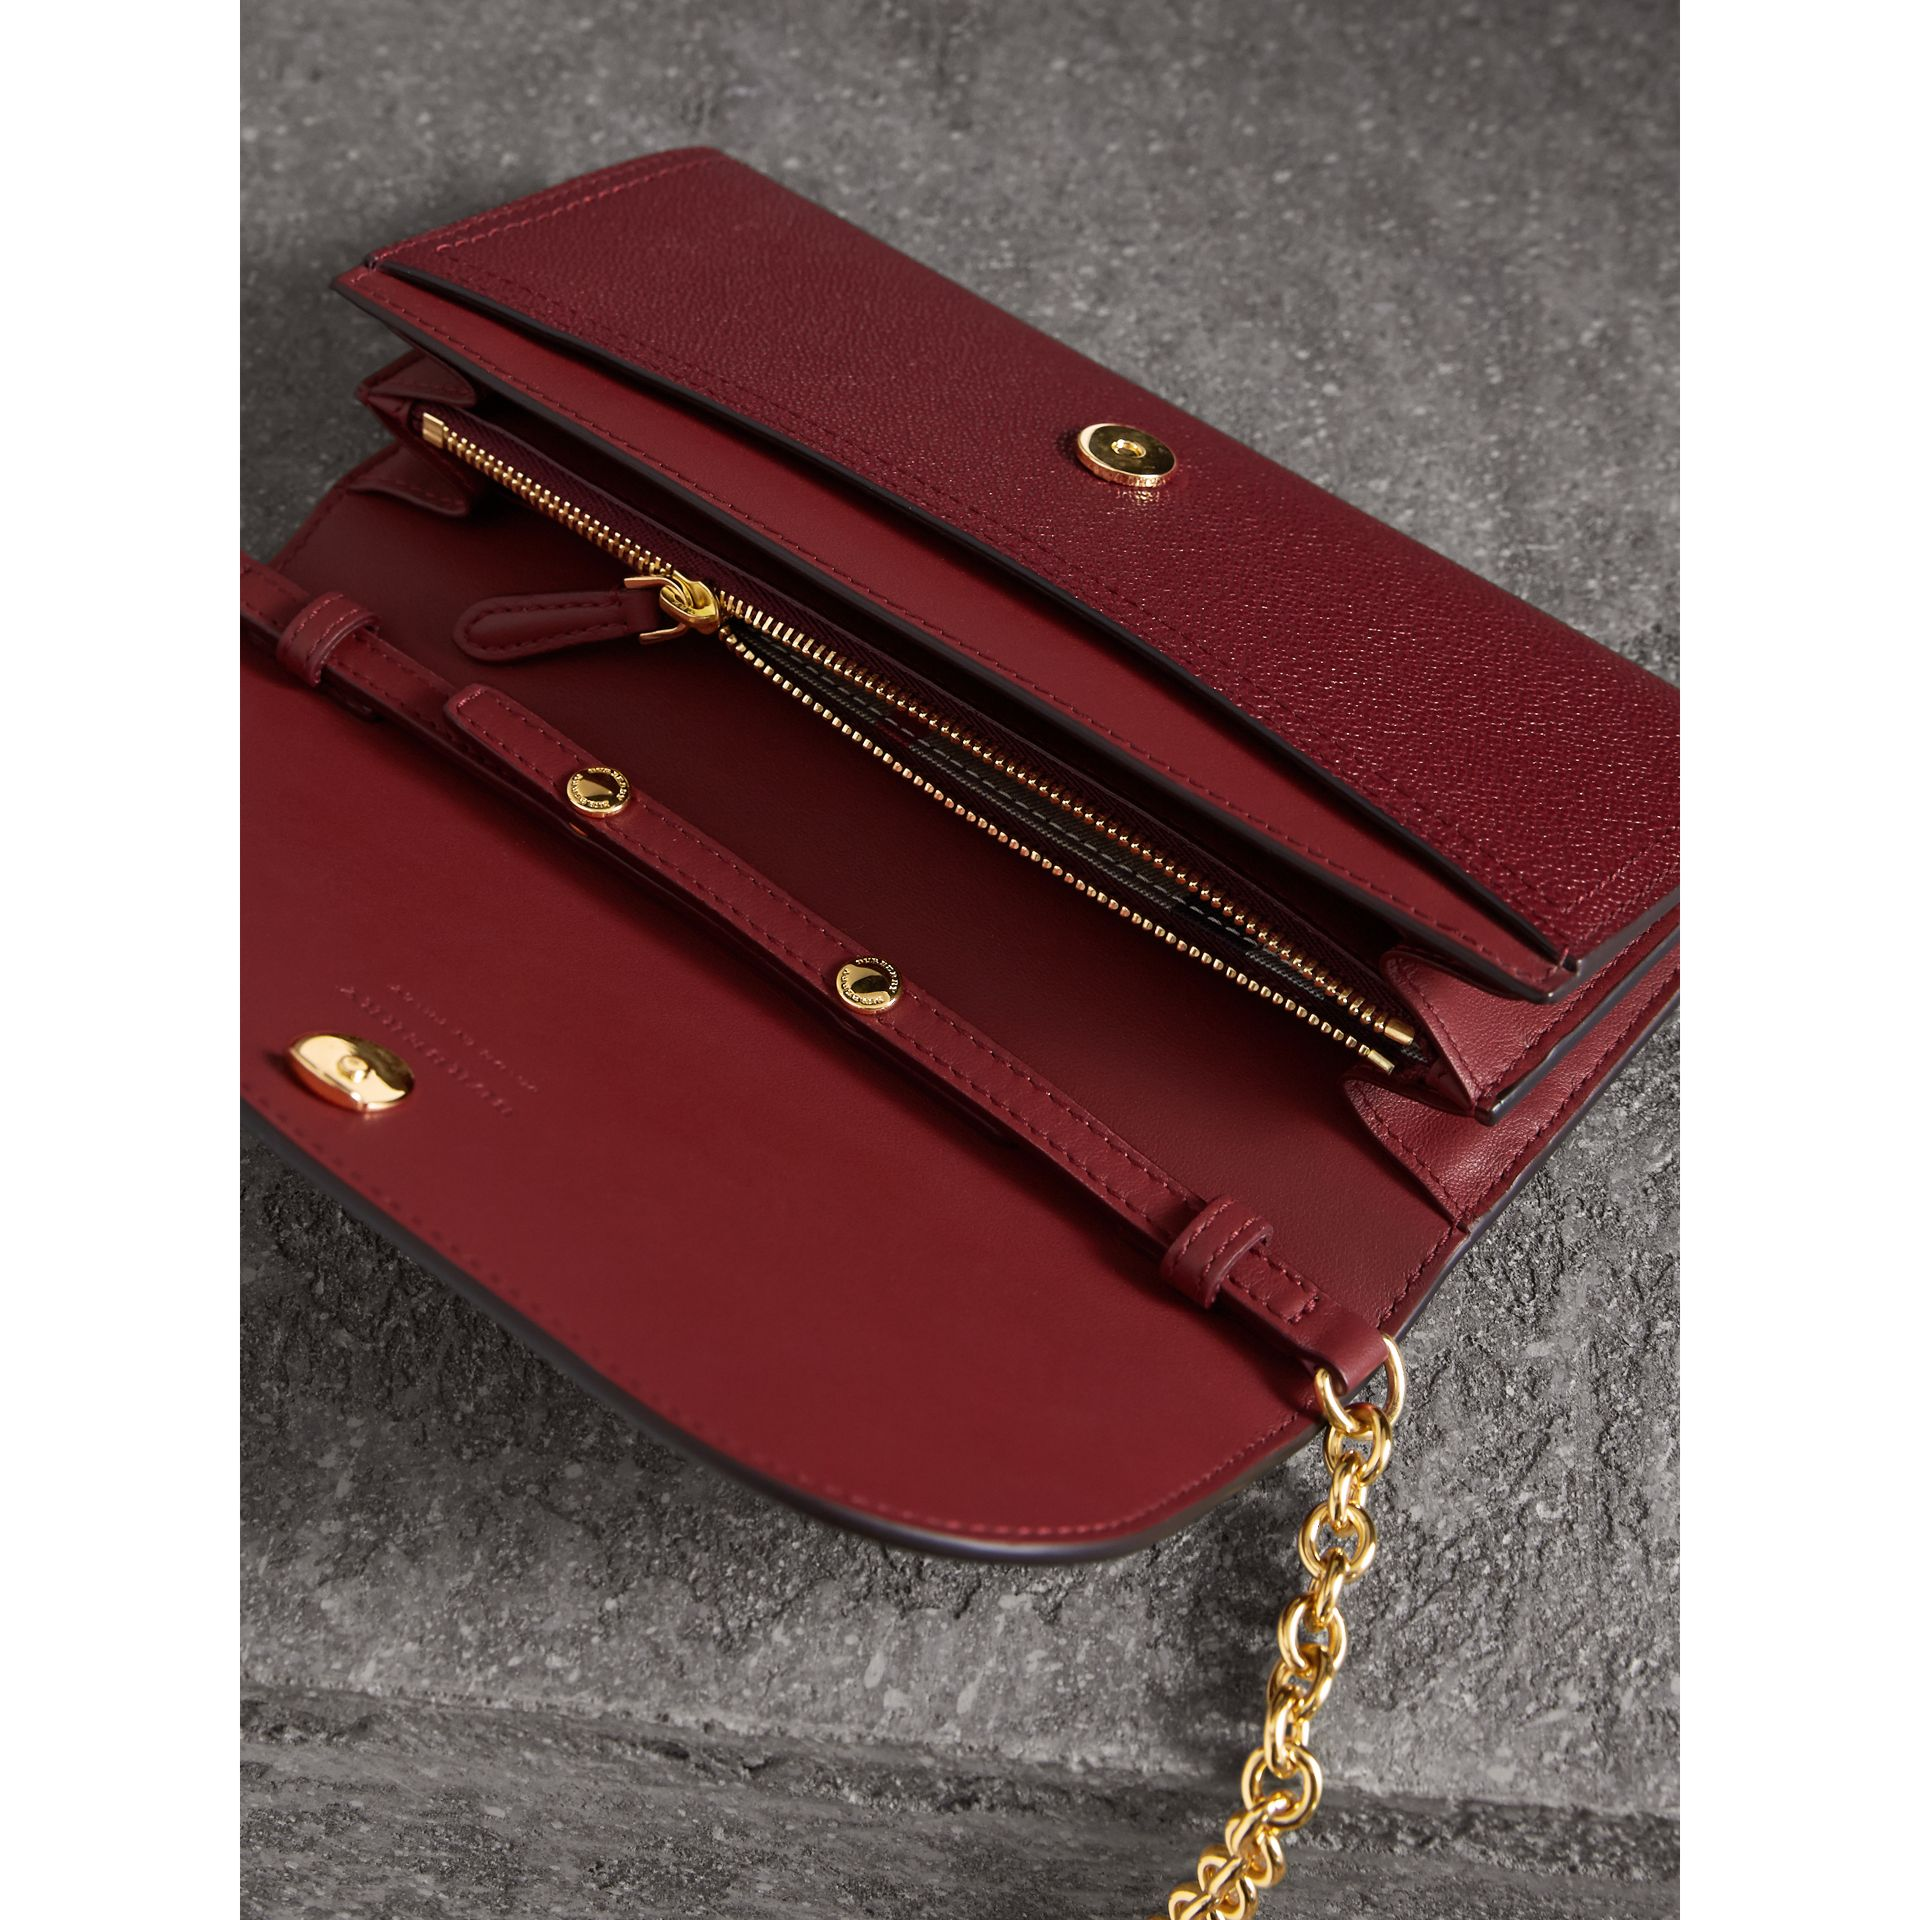 Leather Wallet with Chain in Burgundy - Women | Burberry - gallery image 7